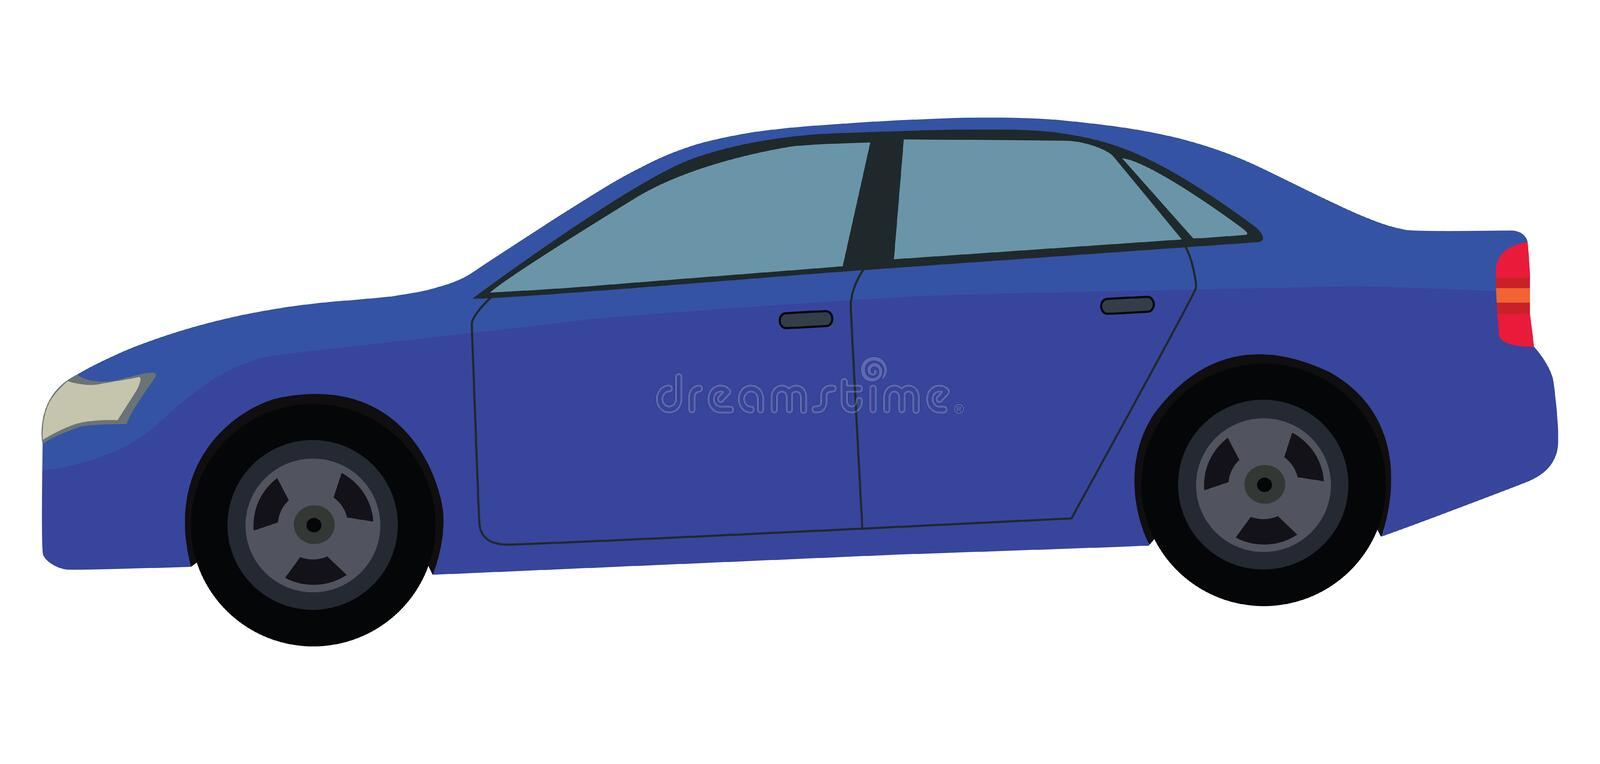 Blue Car stock illustration